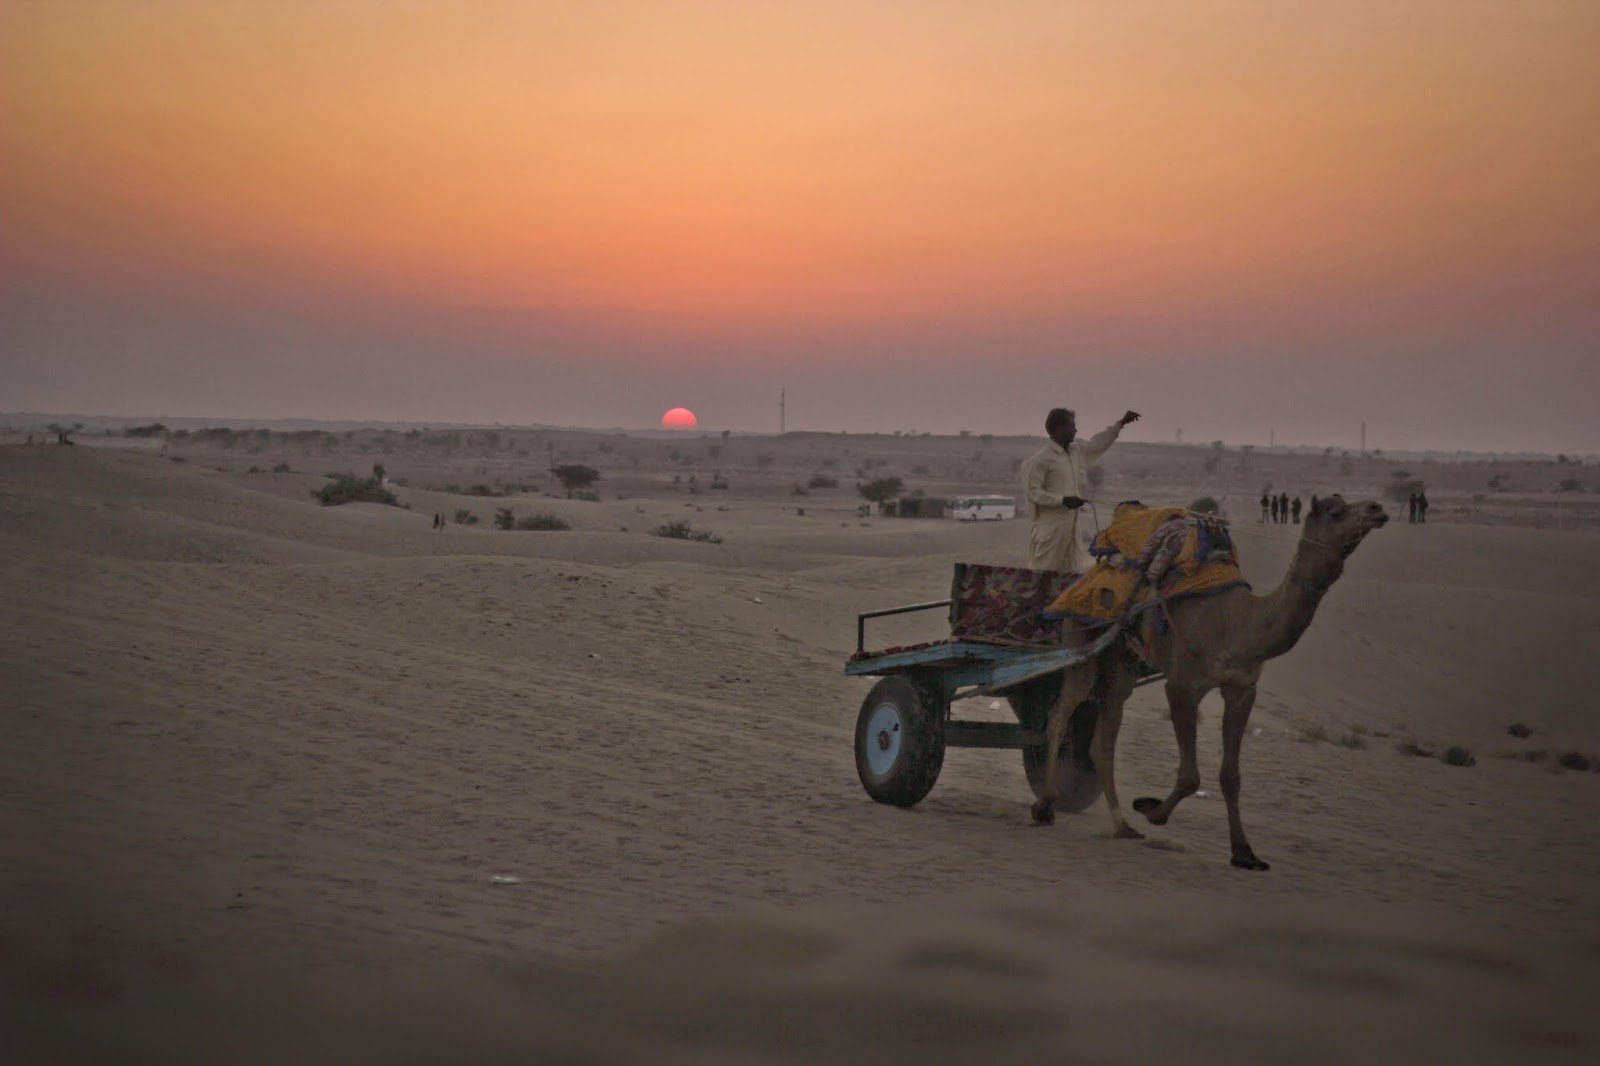 A man driving a camel cart at the Sam Sand dunes, Jaisalmer